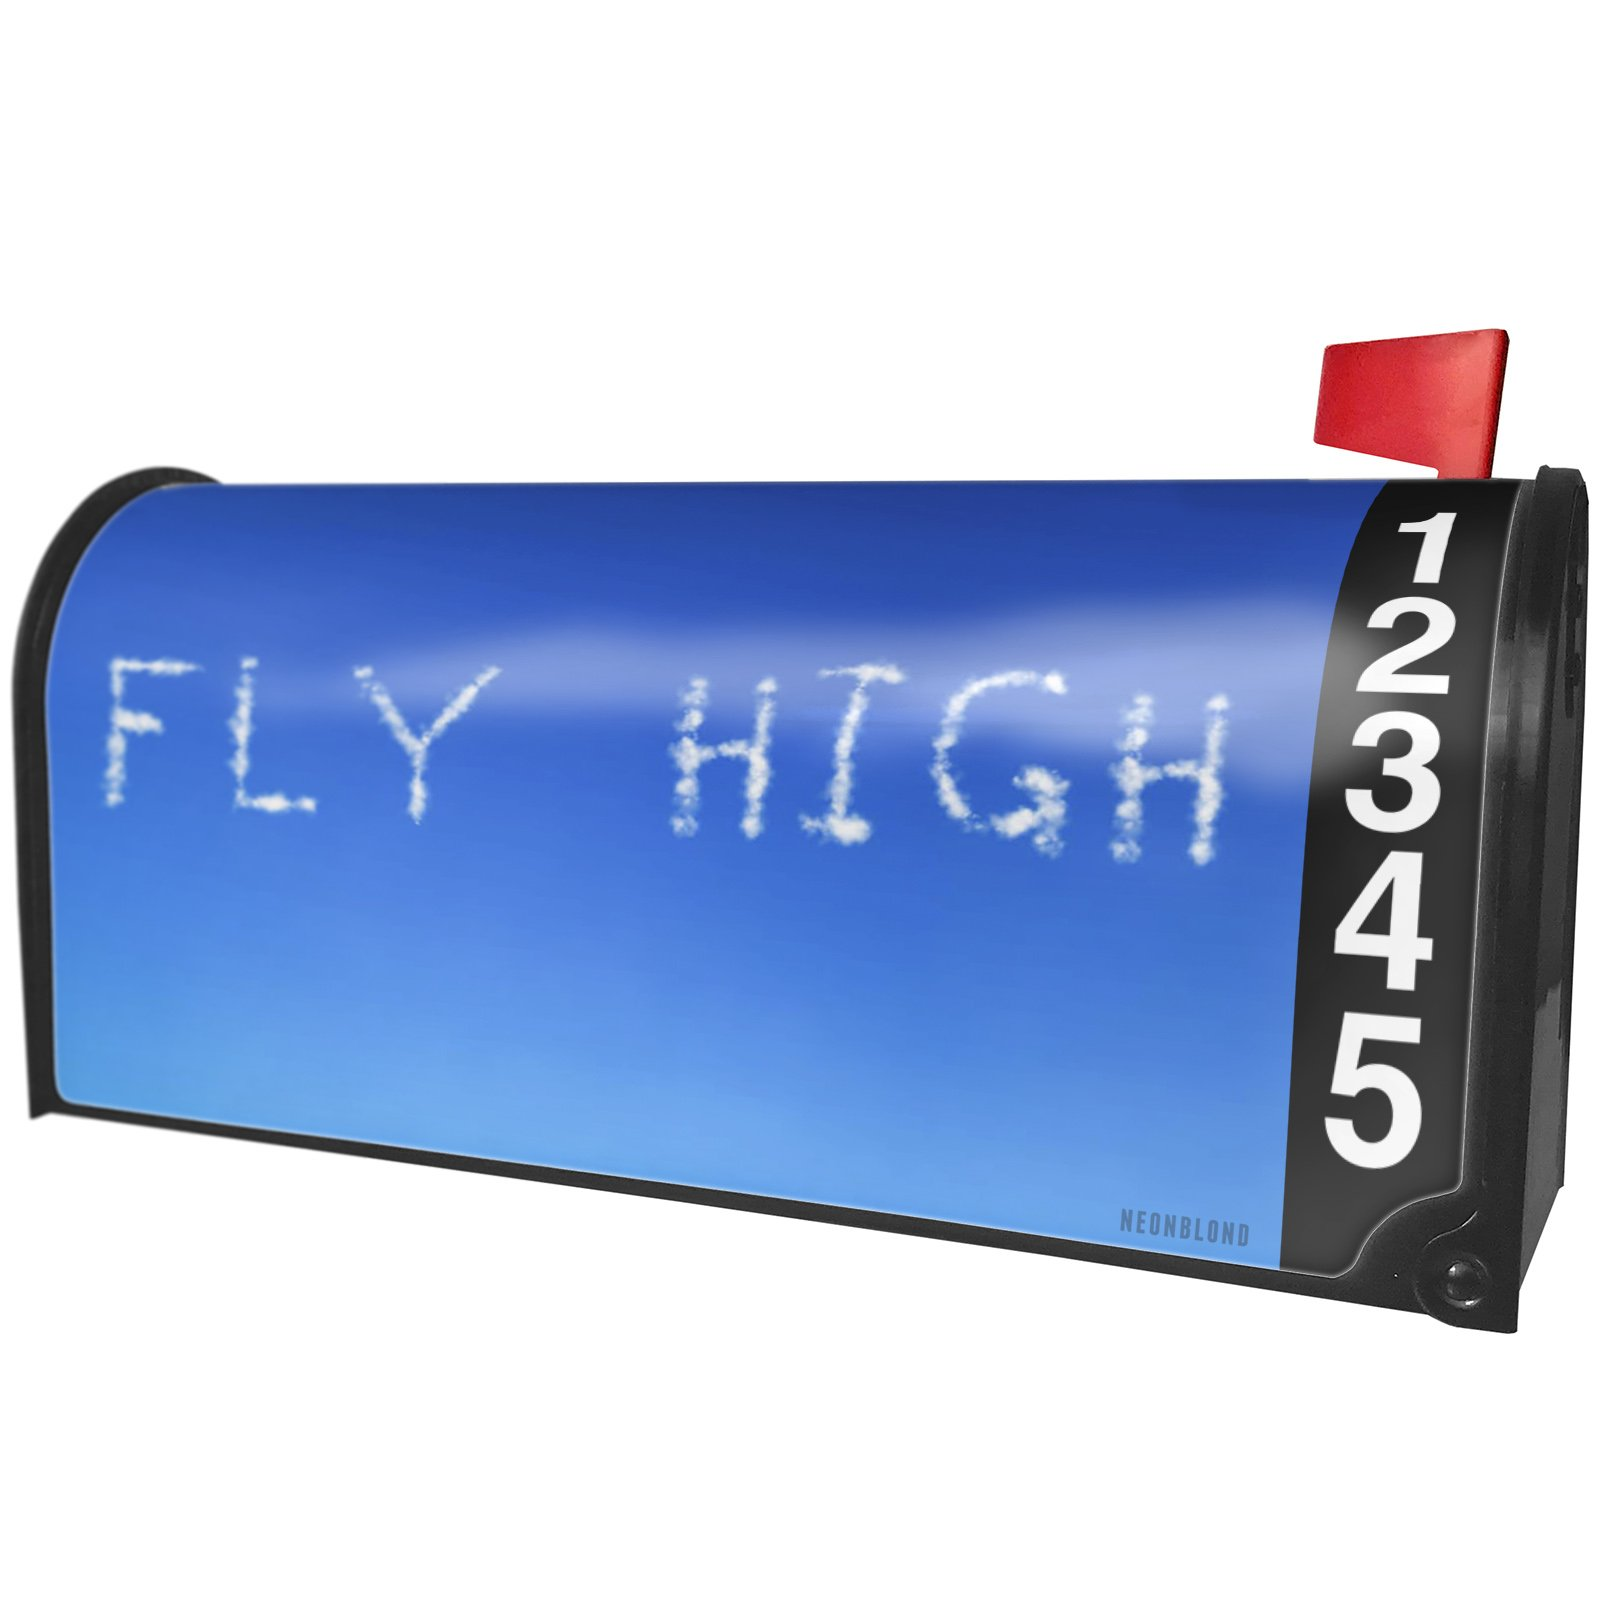 NEONBLOND Fly High Clouds Fresh Air Magnetic Mailbox Cover Custom Numbers